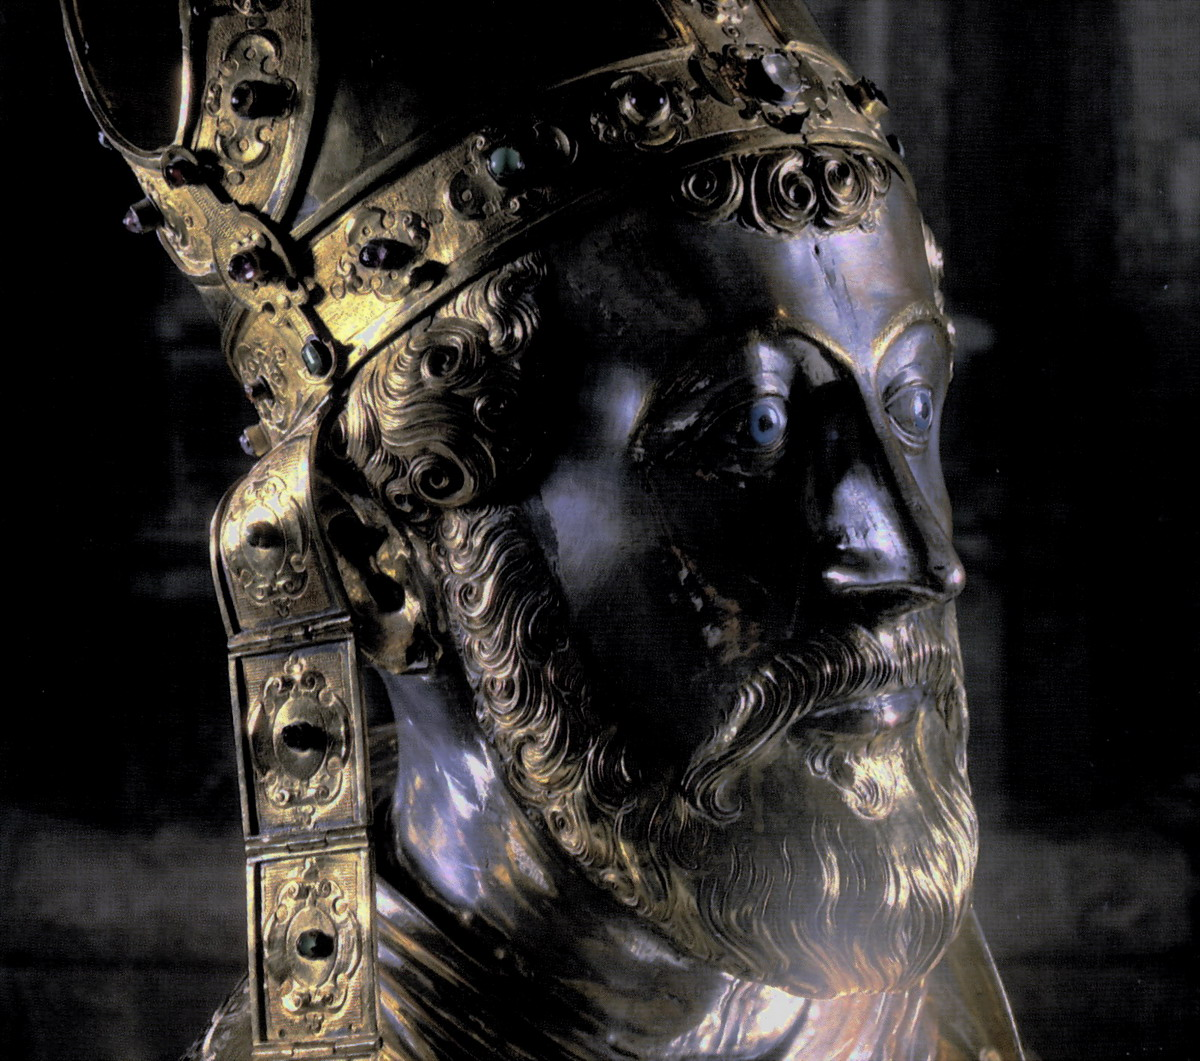 Maastricht, Treasury of Saint Servatius, reliquary bust of Servatius